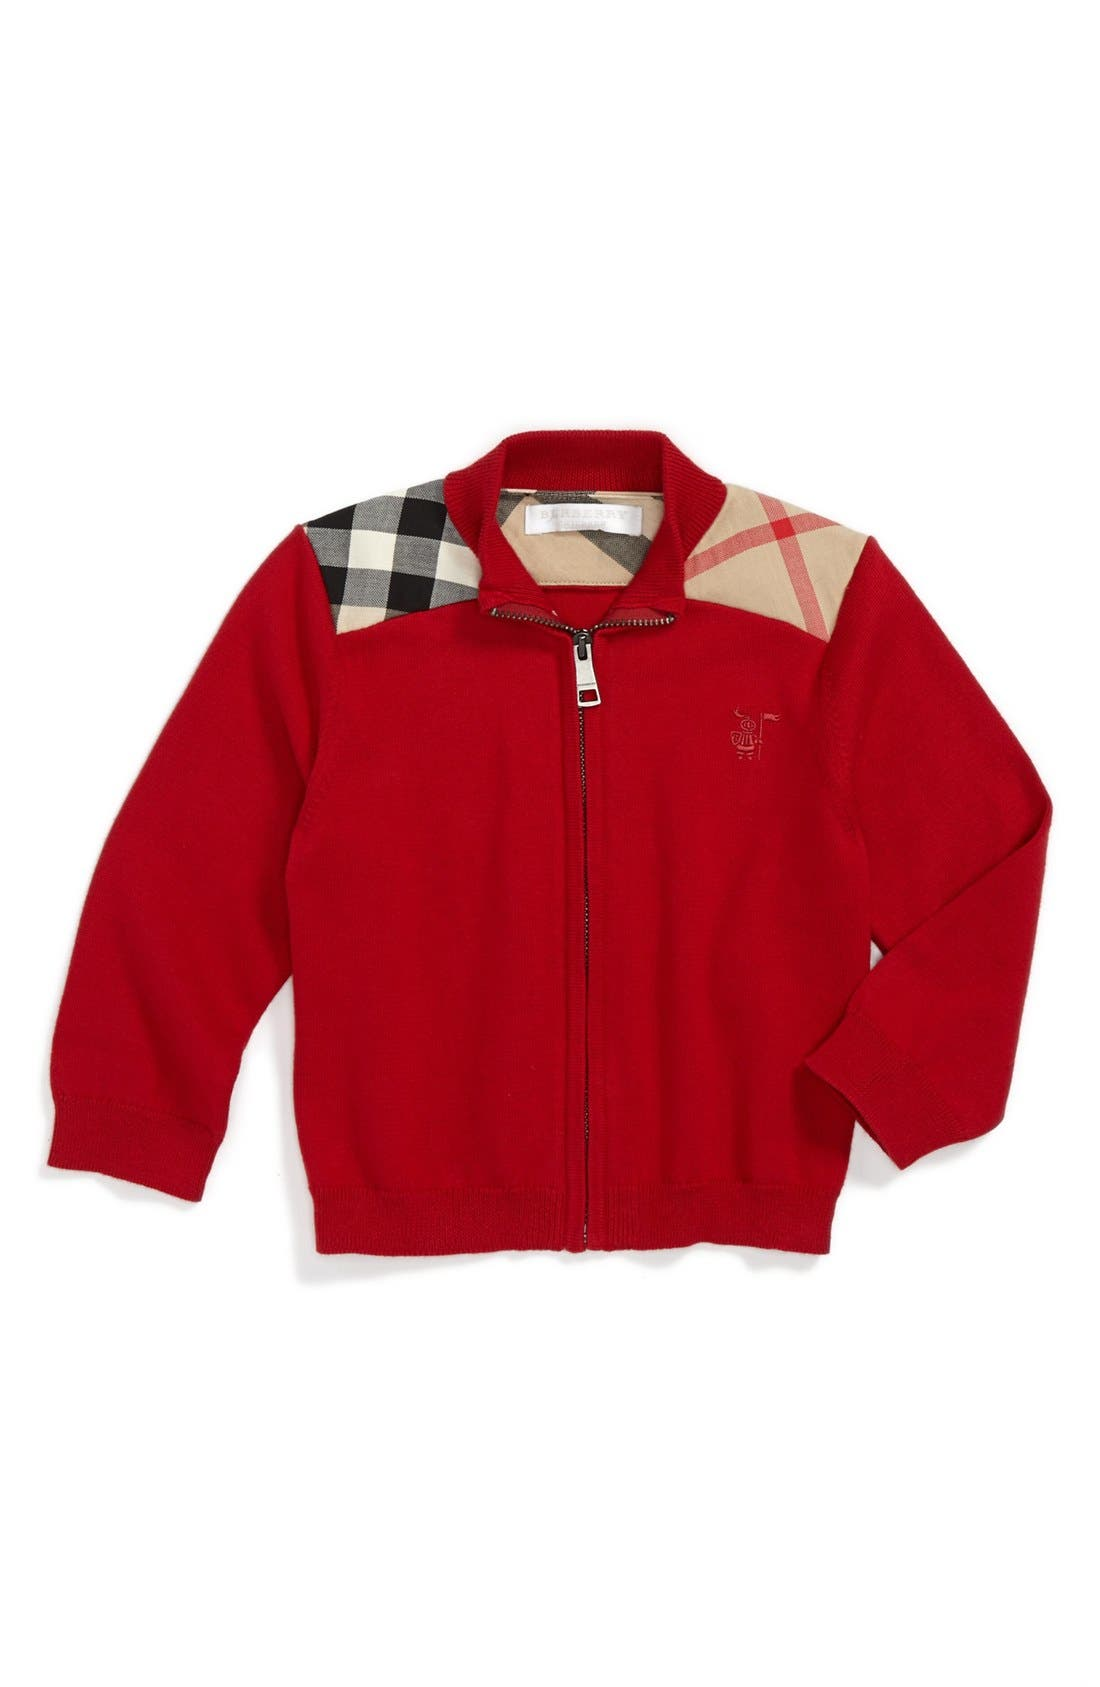 Alternate Image 1 Selected - Burberry 'Christian' Sweater (Baby Boys)